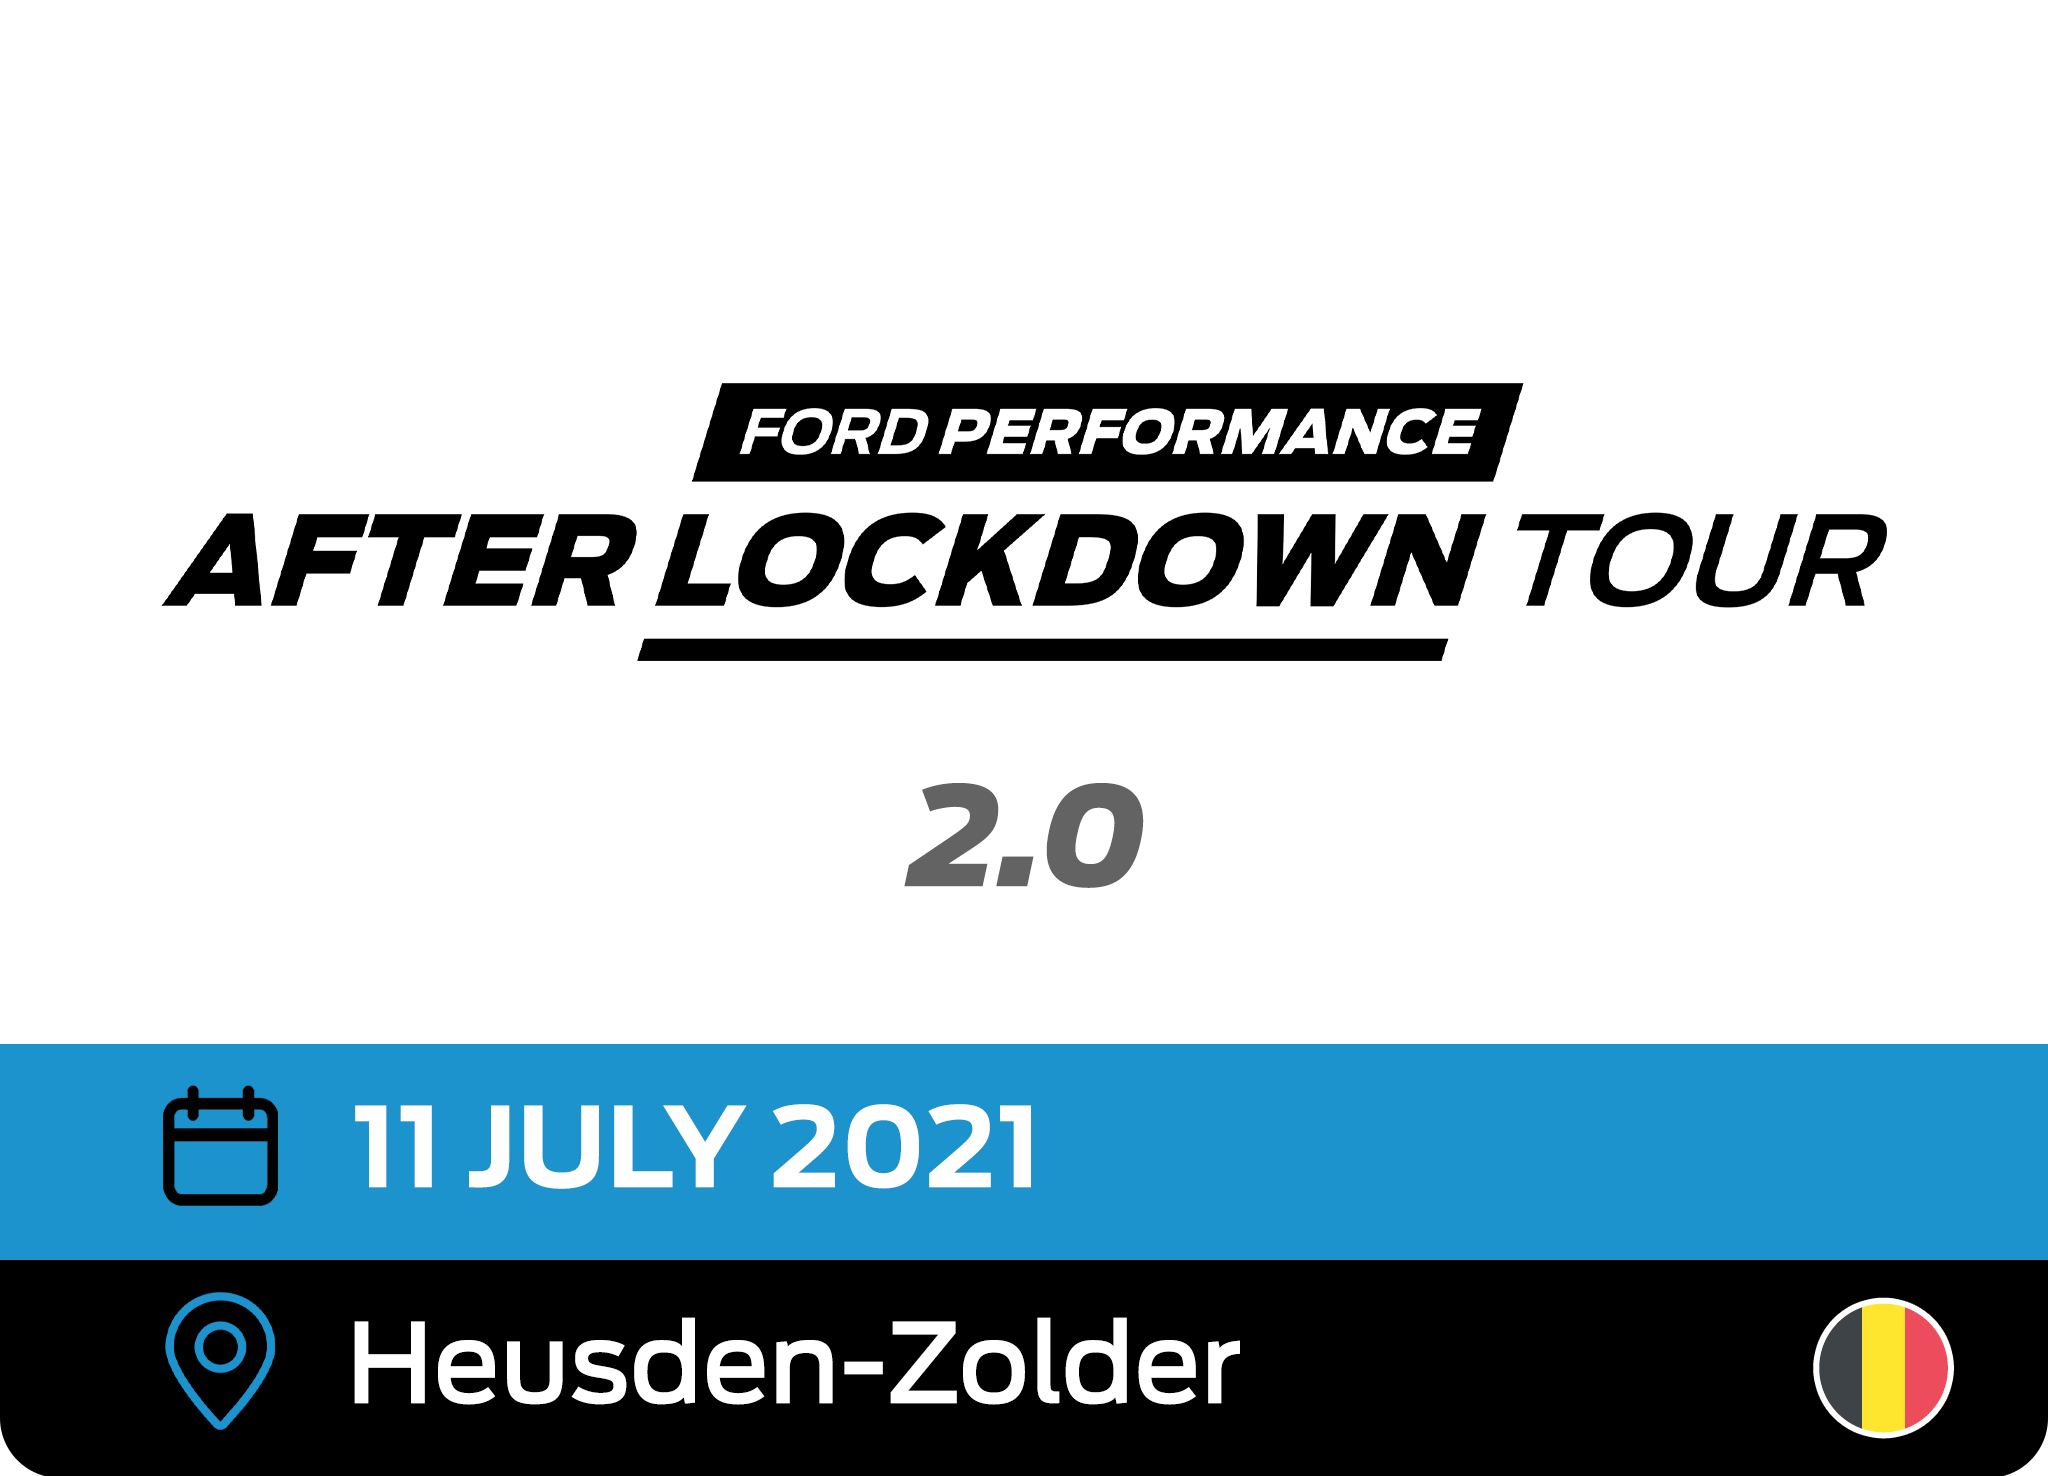 Ford Performance After Lockdown Tour 2.0